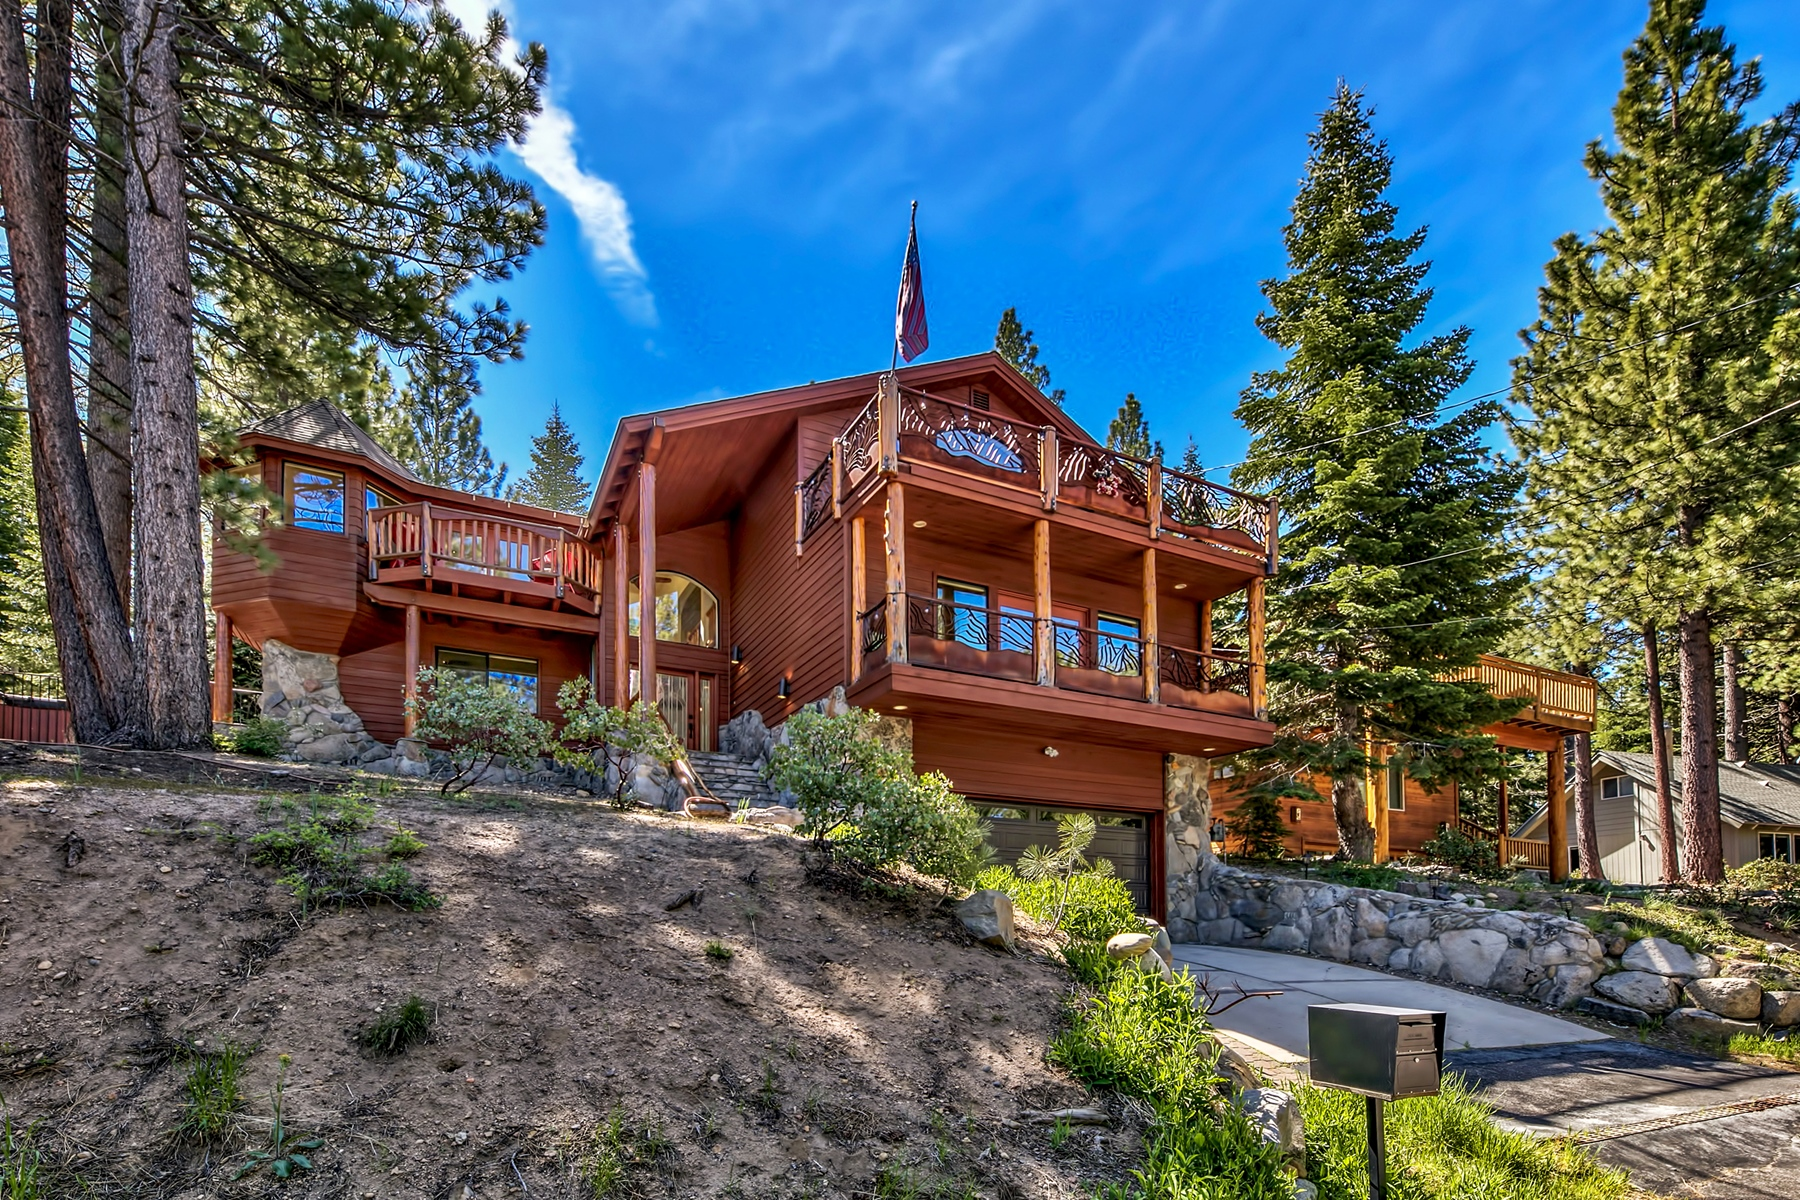 Single Family Homes for Active at 1461 Skyline Drive, South Lake Tahoe, CA 96150 1461 Skyline Drive South Lake Tahoe, California 96150 United States